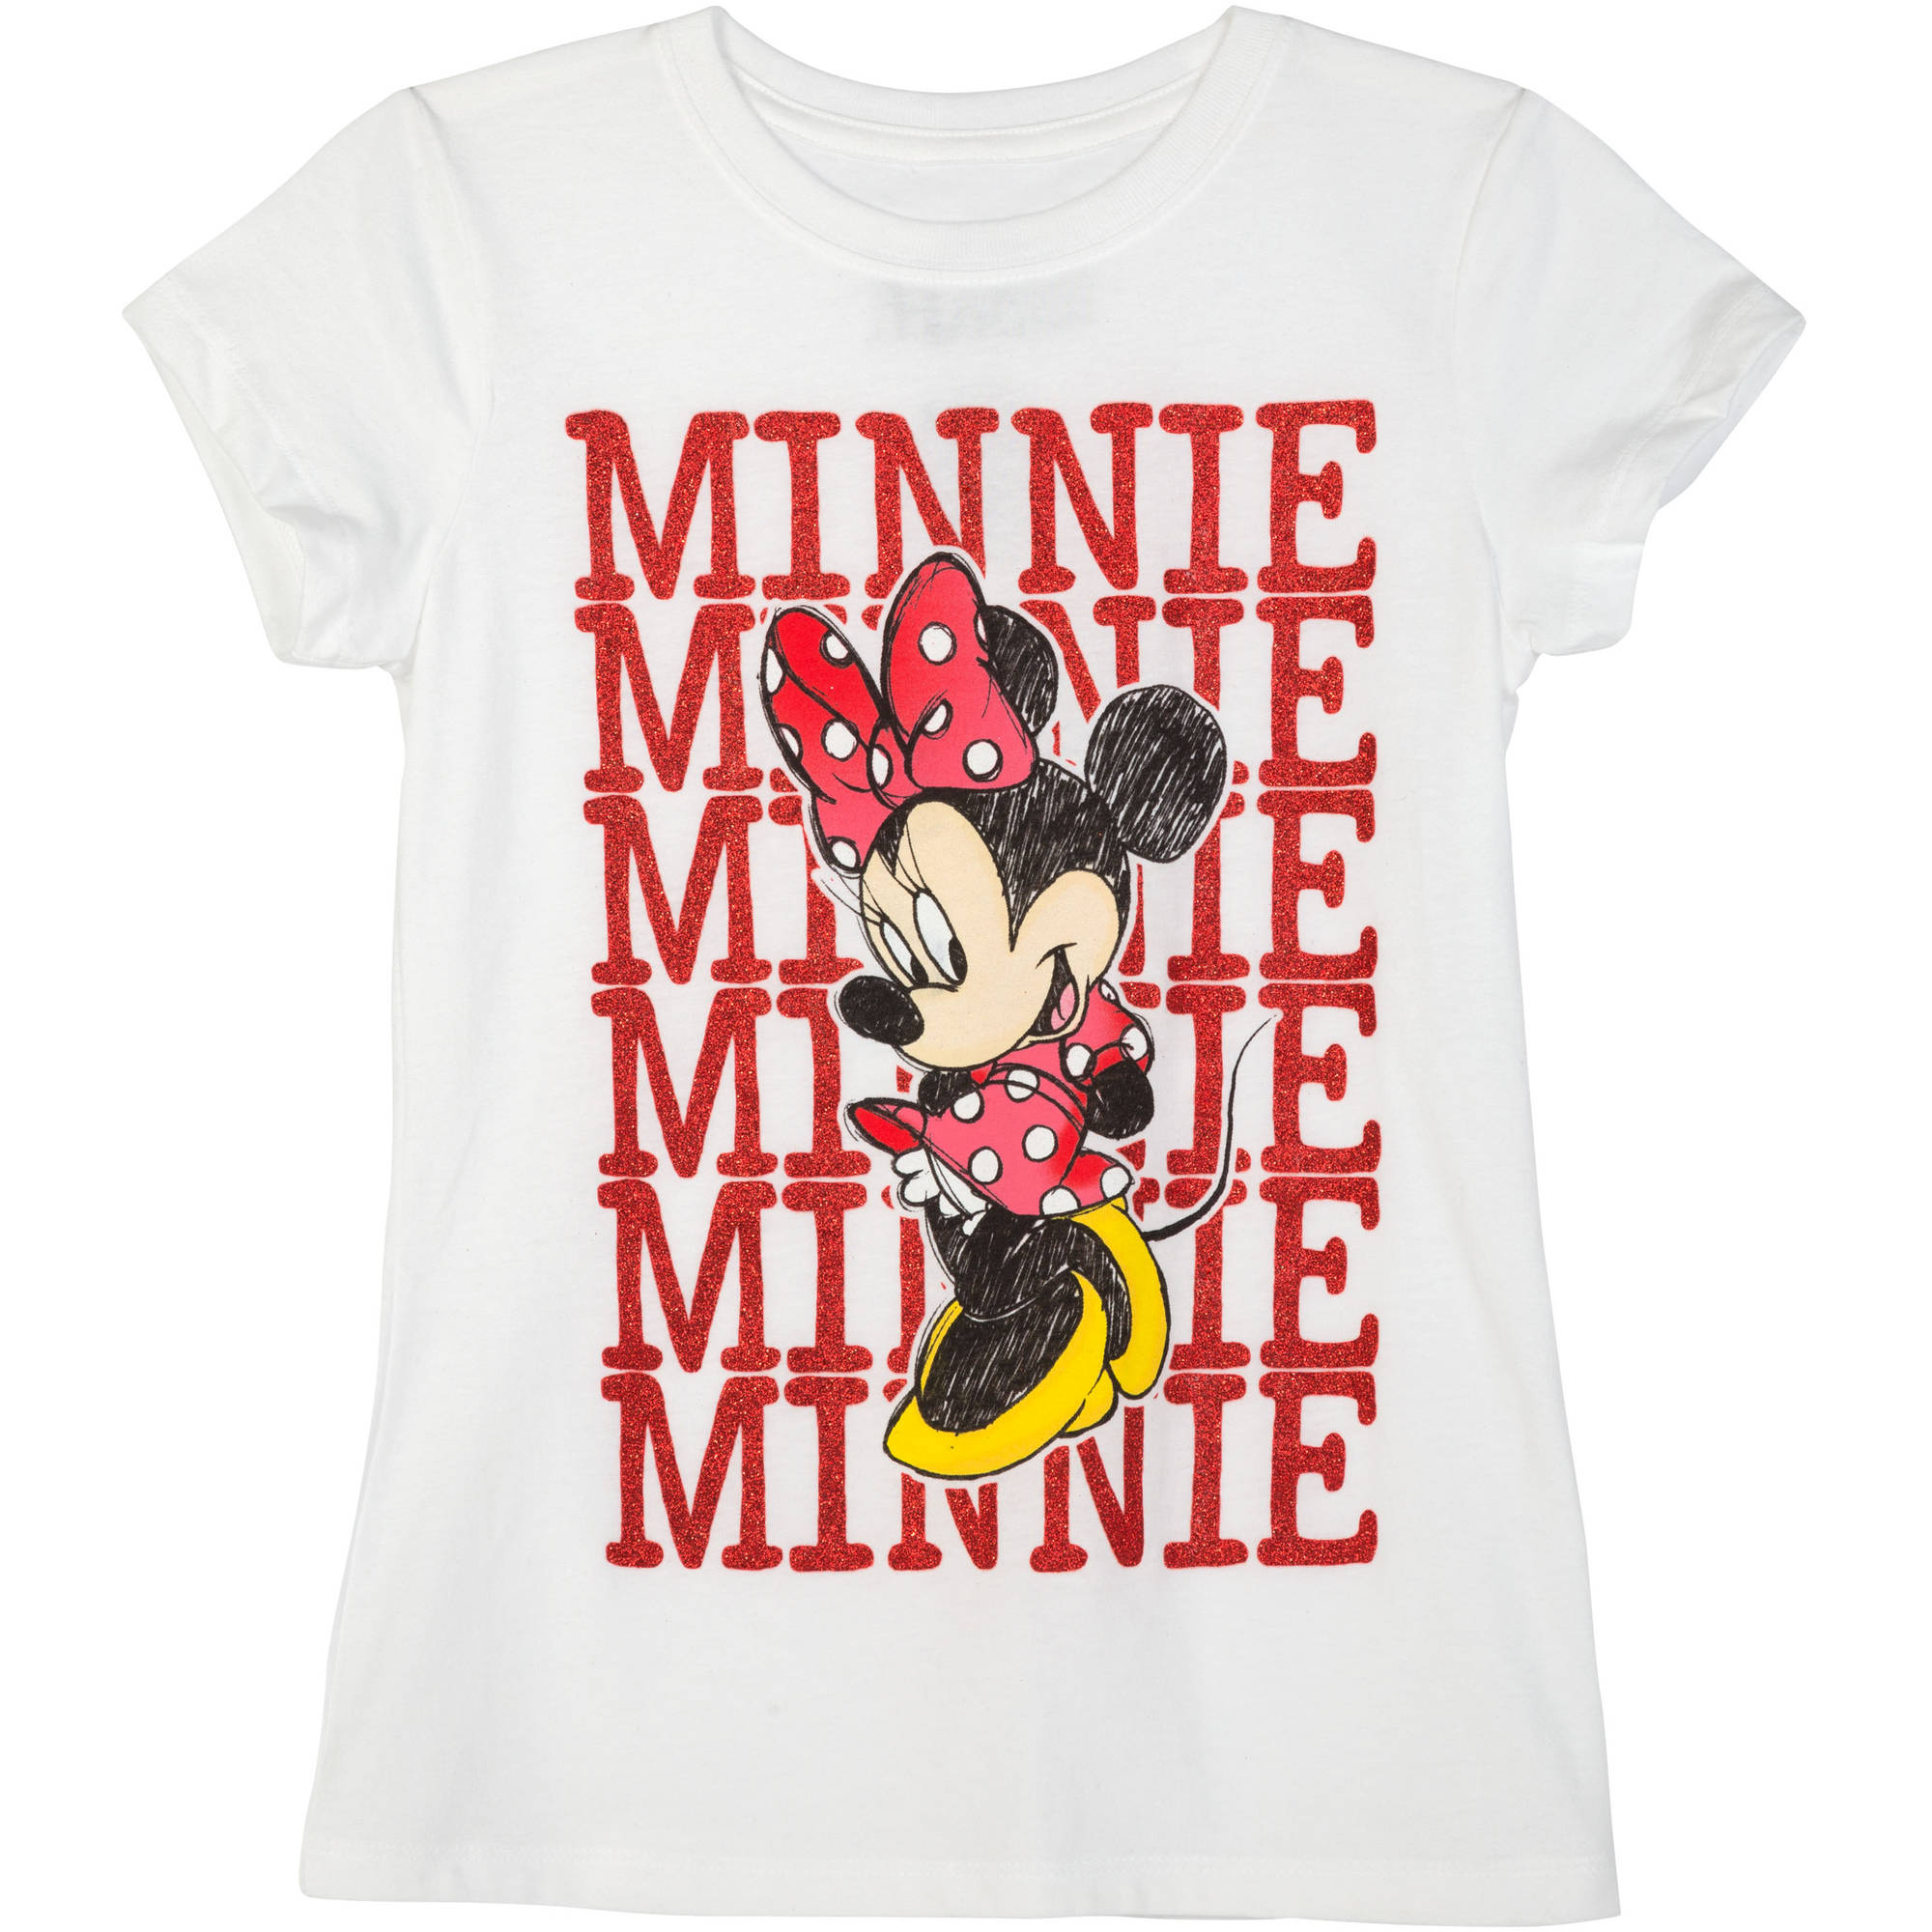 Minnie Mouse Girls' Minnie Repeat Short Sleeve Crew Neck Graphic Tee